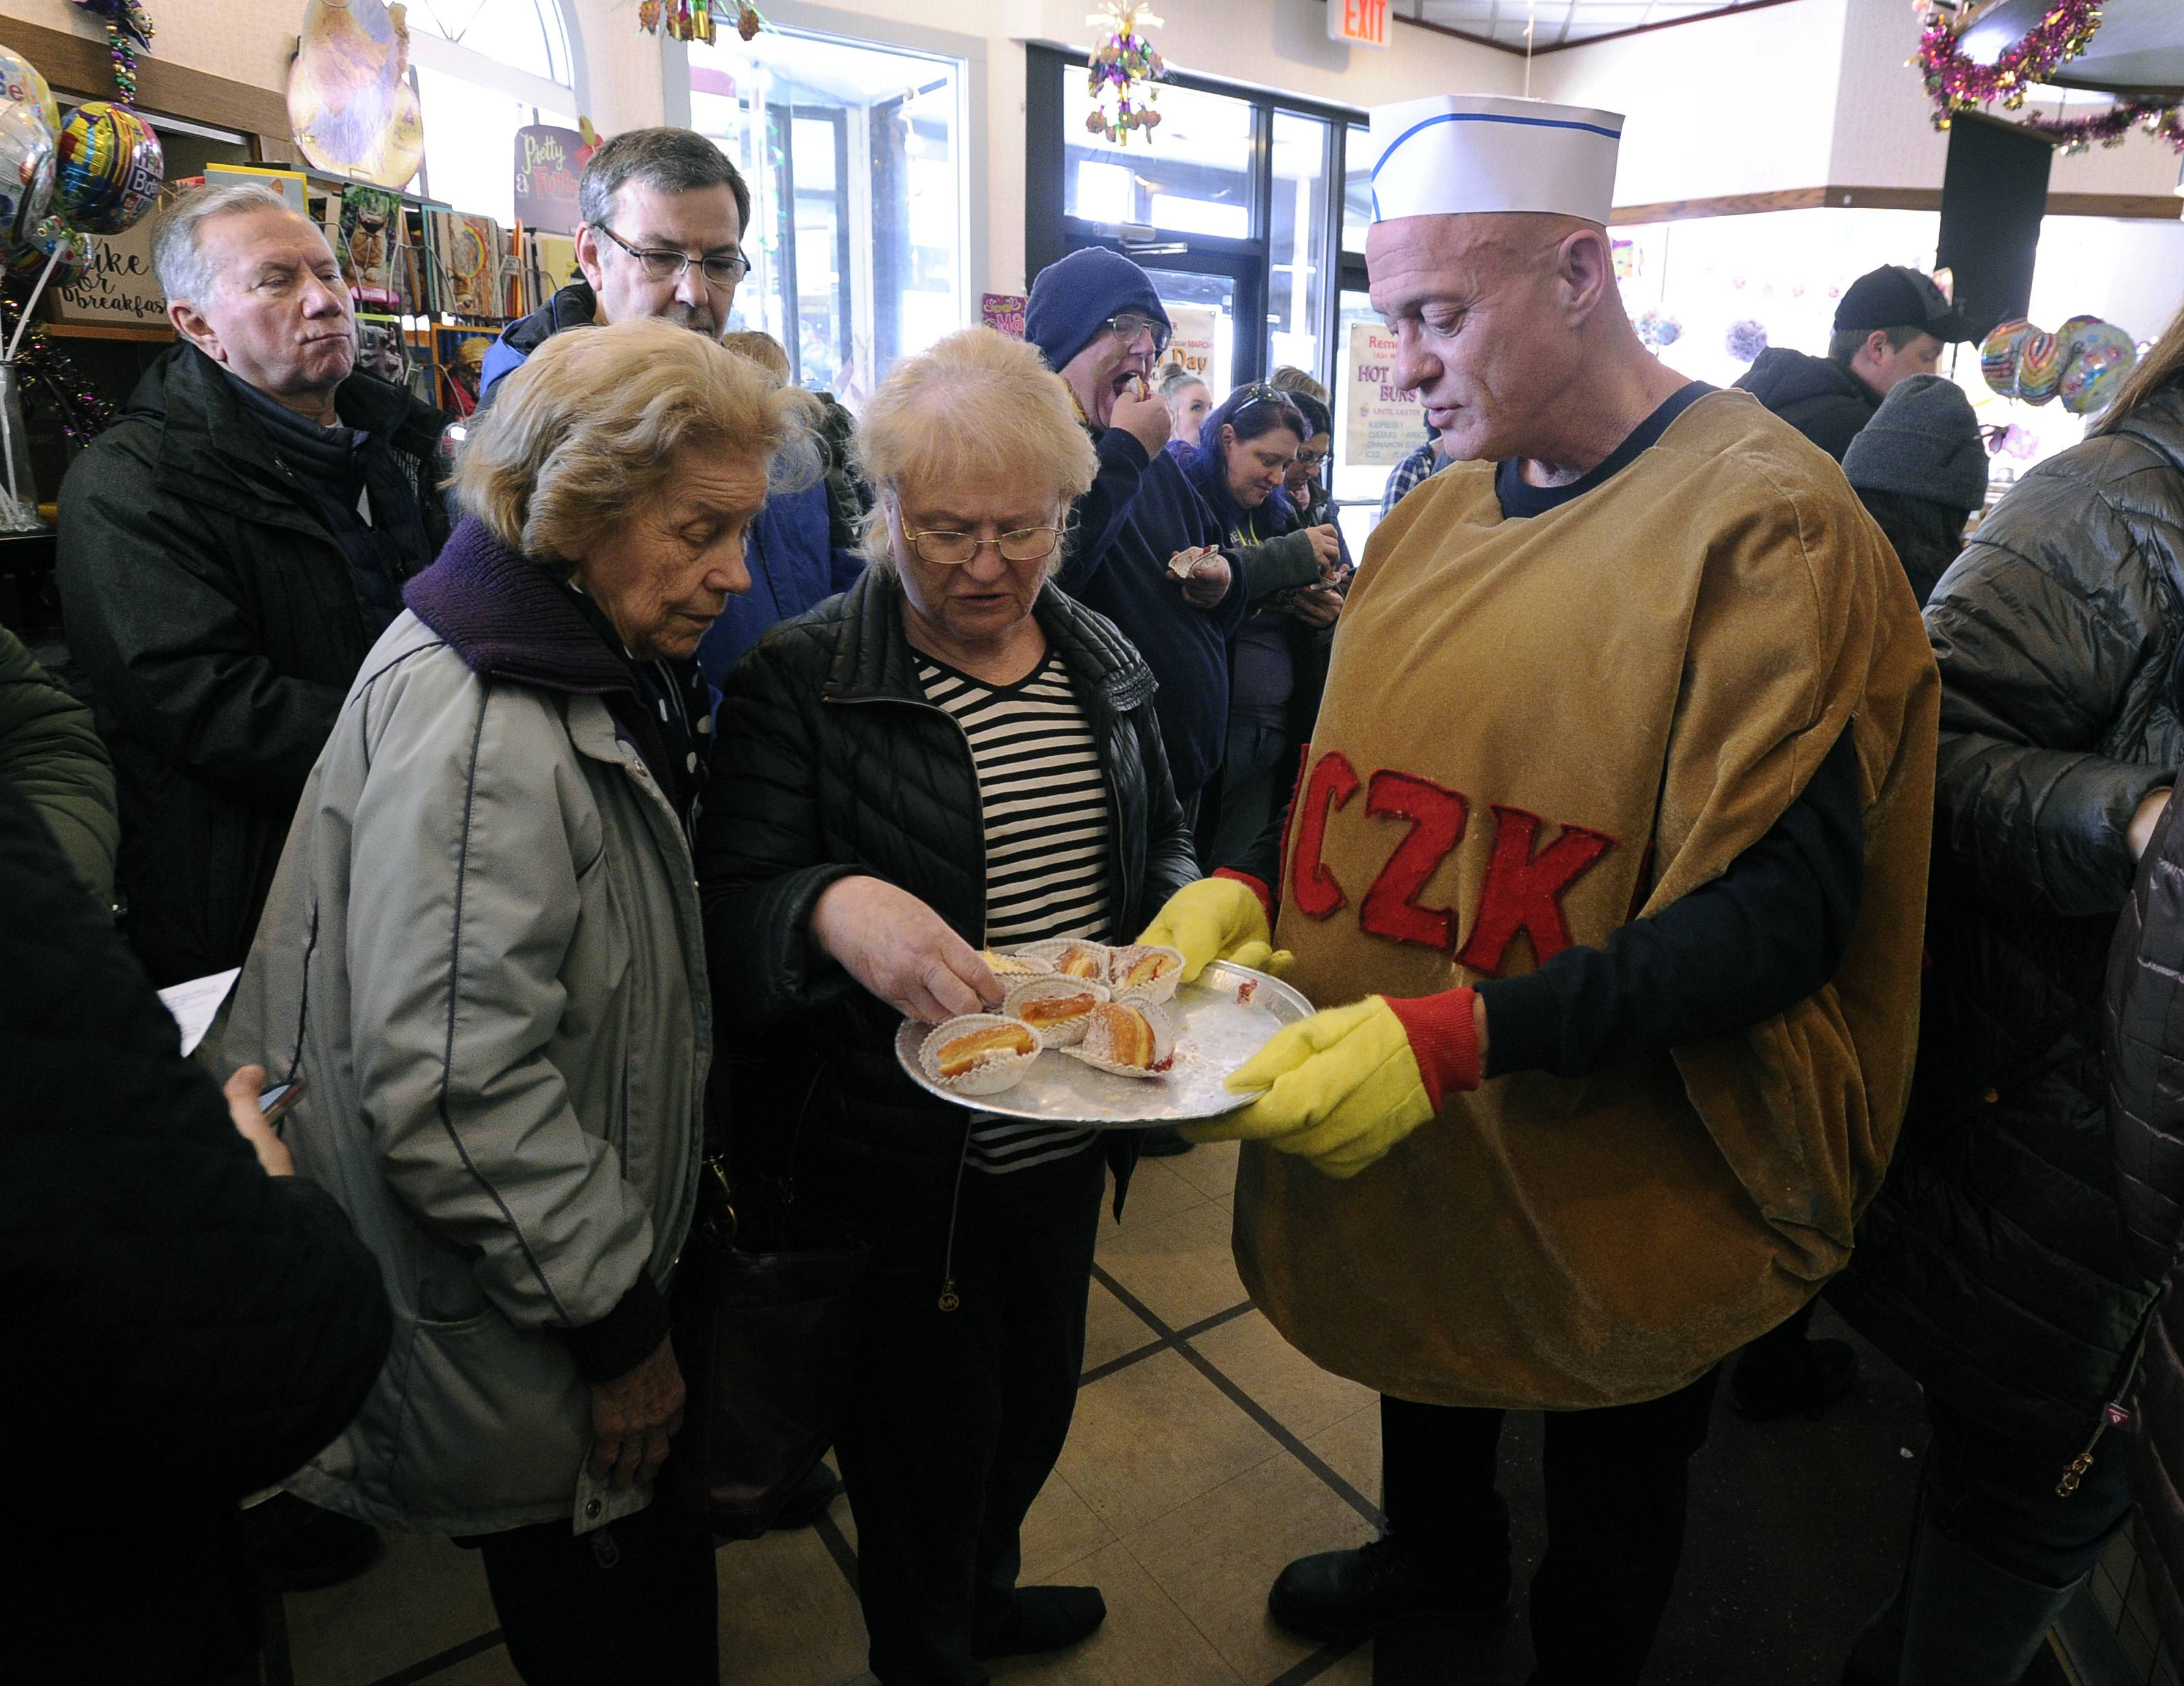 Robin Czerniak, brother of the owner of the Central Continental Bakery in Mount Prospect, hands out strawberry samples of the traditional polish pastry, paczki, to patrons waiting on orders to be picked up as the Fat Tuesday rush fills the bakery.